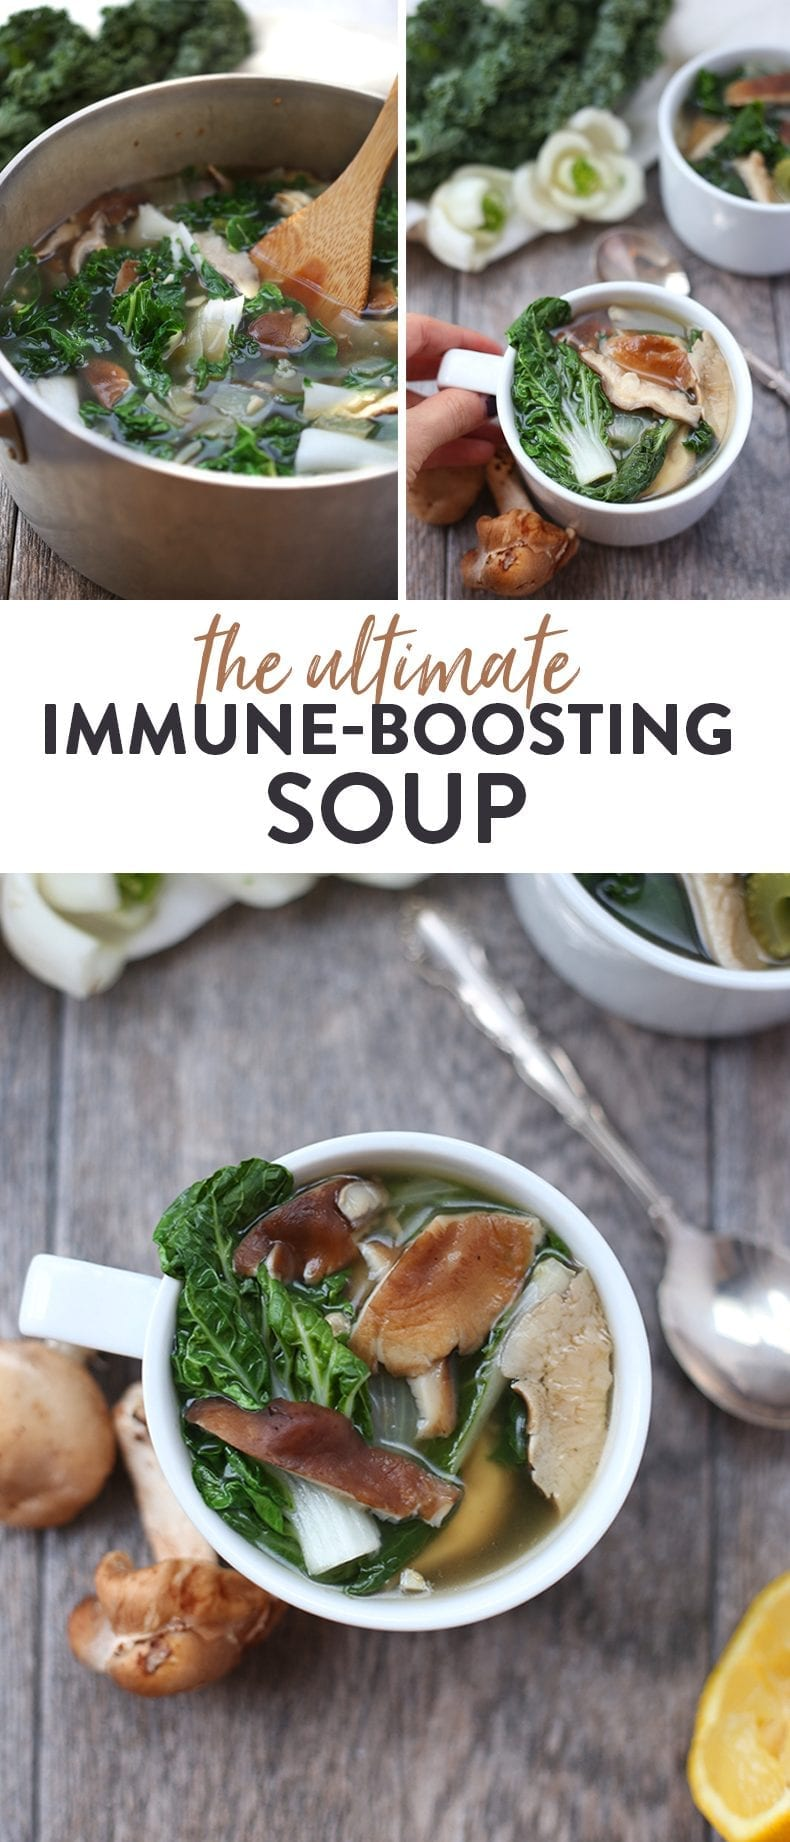 Feeling under the weather? Kick that cold or flu to the curb with the ultimate immune-boosting soup. Packed full of vitamins and minerals from delicious ingredients like turmeric, kale and bok choy in a mushroom broth for a healthy vegetarian soup recipe #immuneboosting #immuneboostingsoup #vegansoup